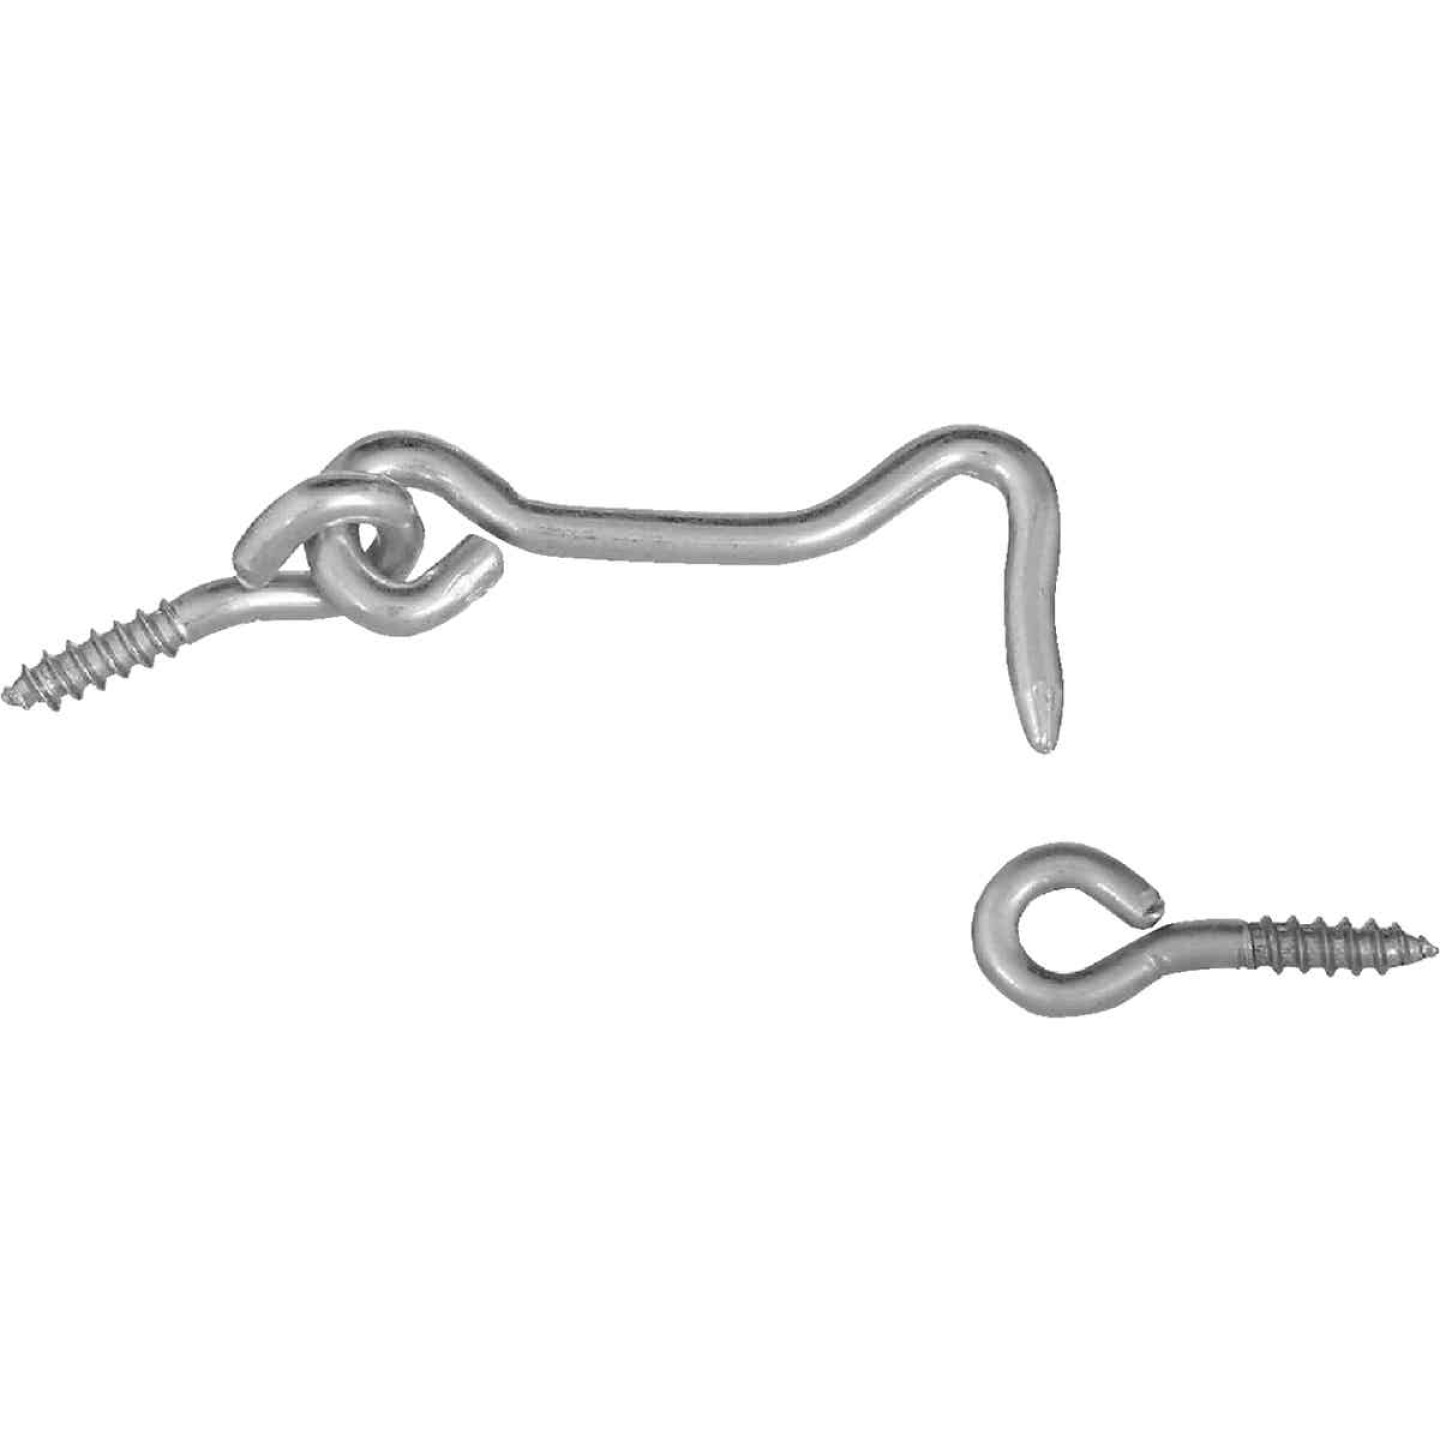 National 2 In. Steel Hook & Eye Bolt (2 Ct.) Image 1